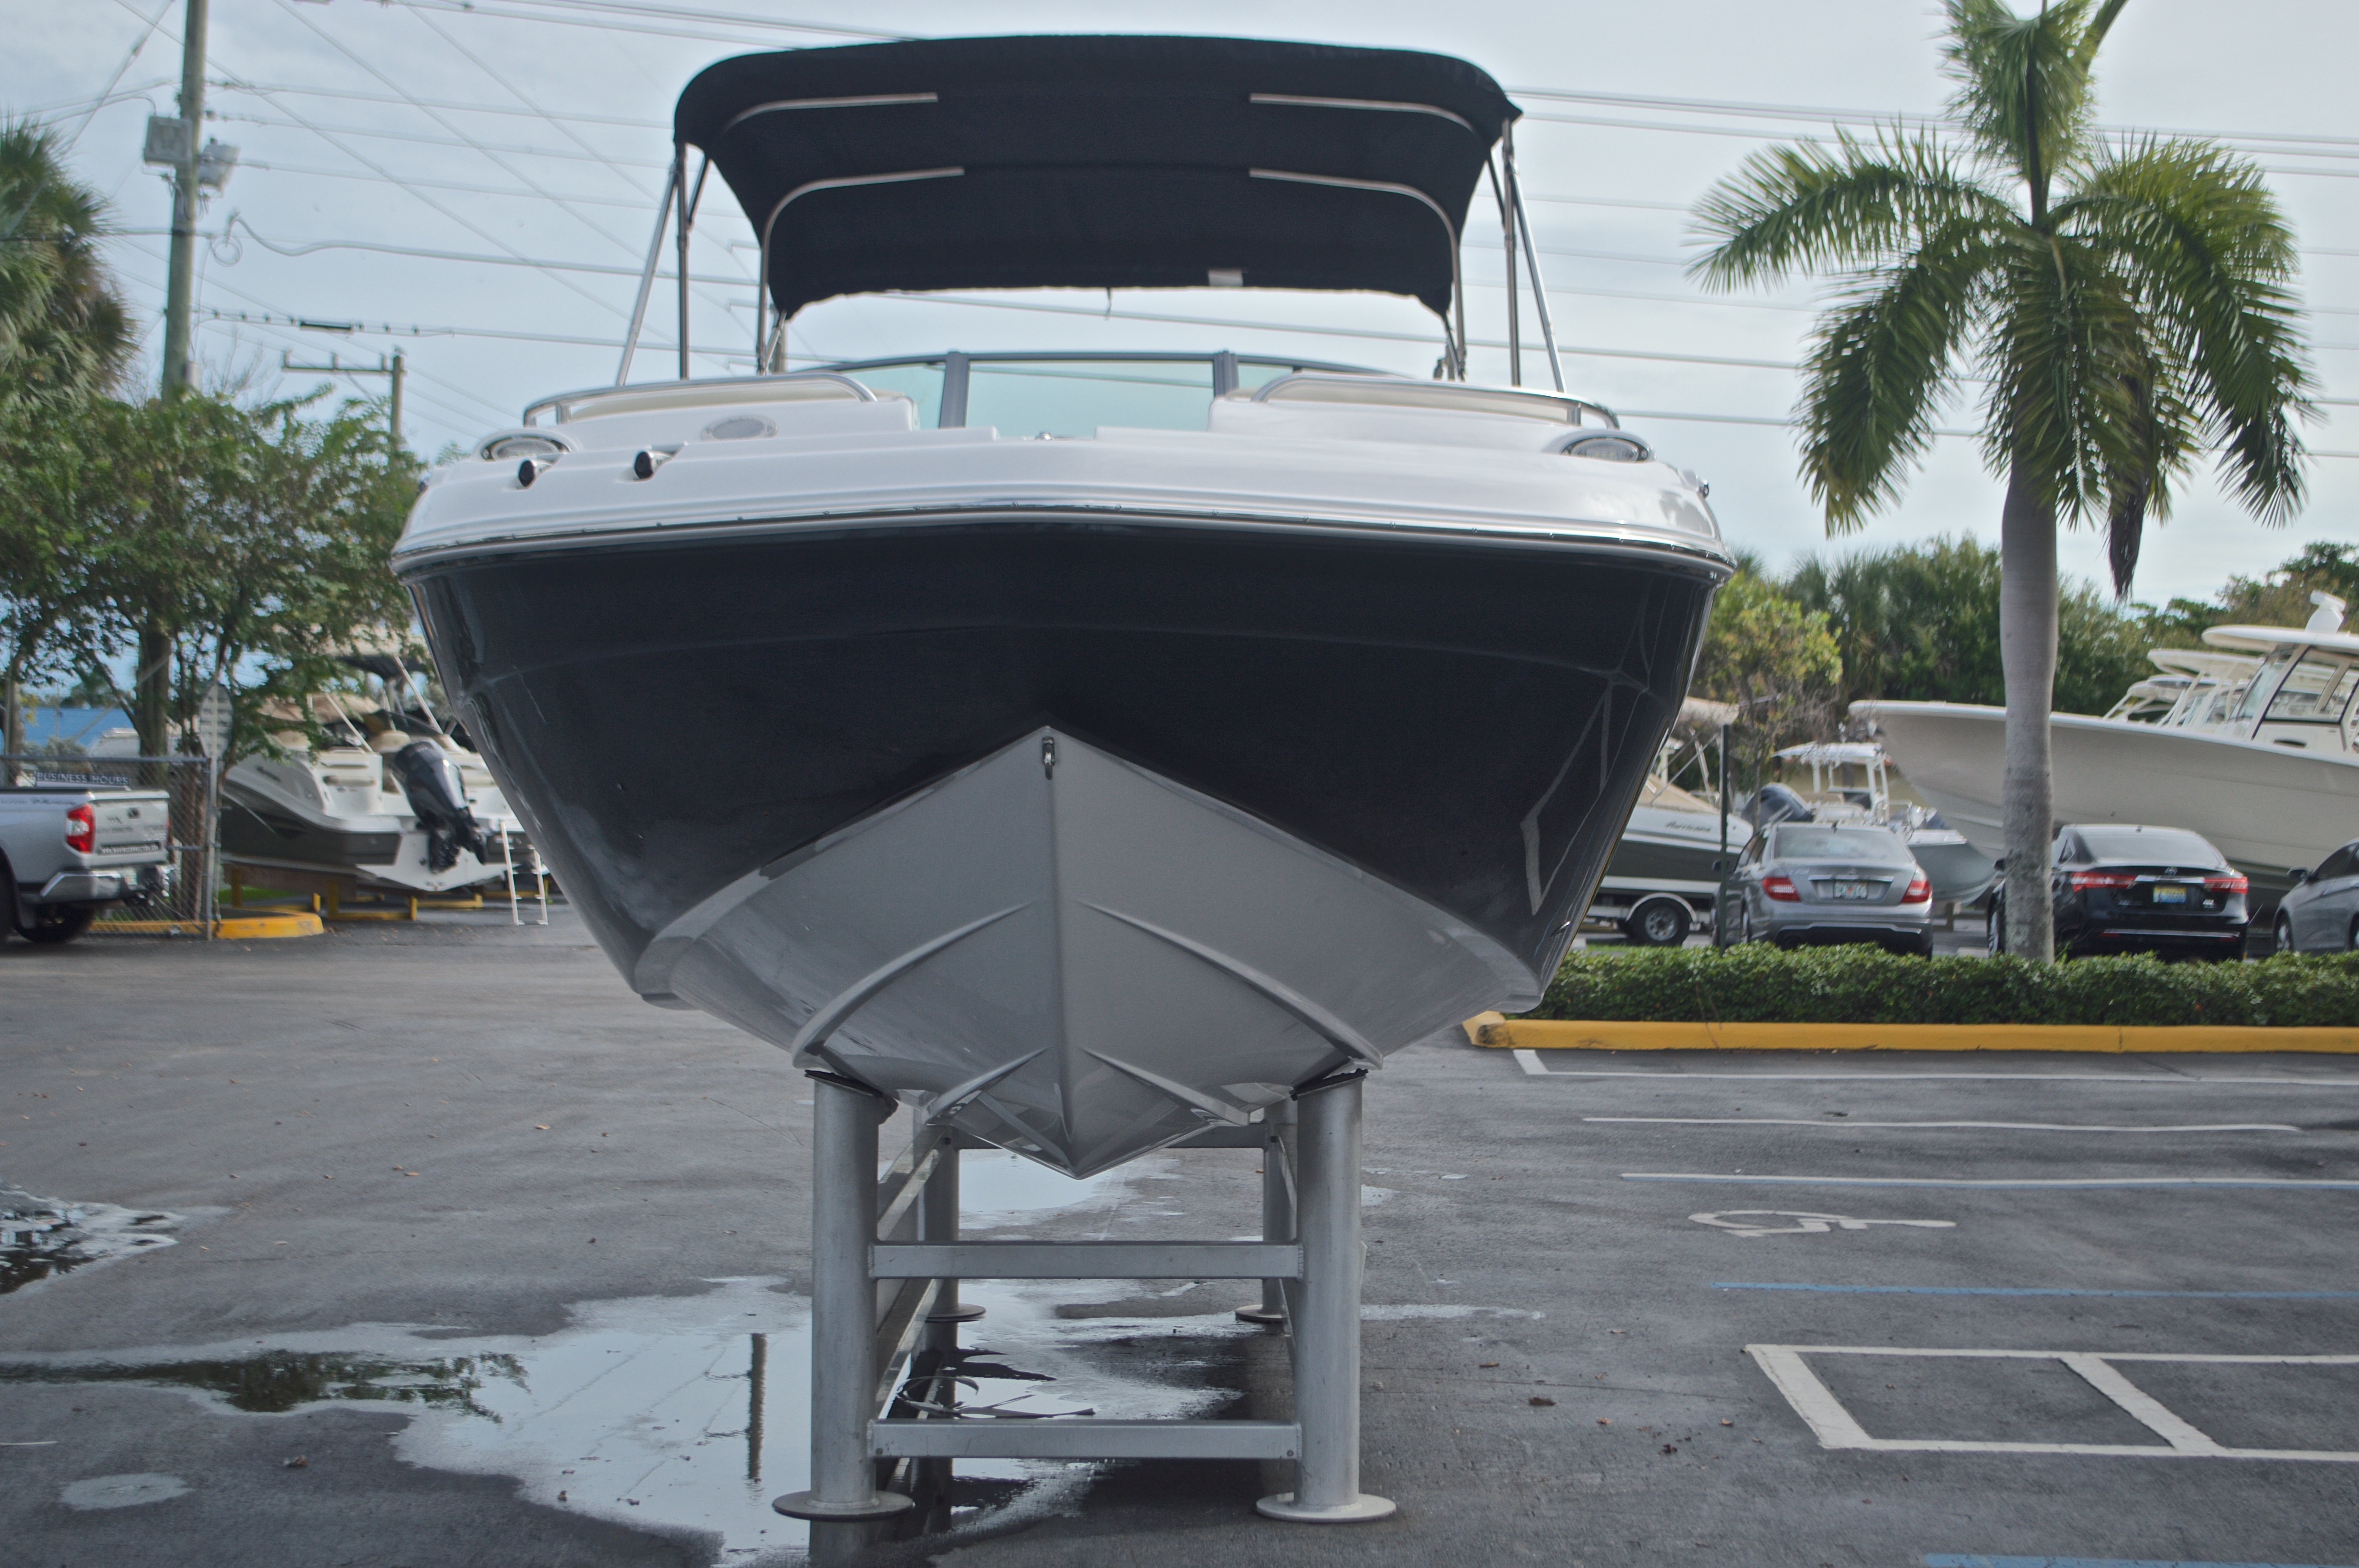 Thumbnail 2 for New 2017 Hurricane SunDeck SD 2200 DC OB boat for sale in West Palm Beach, FL